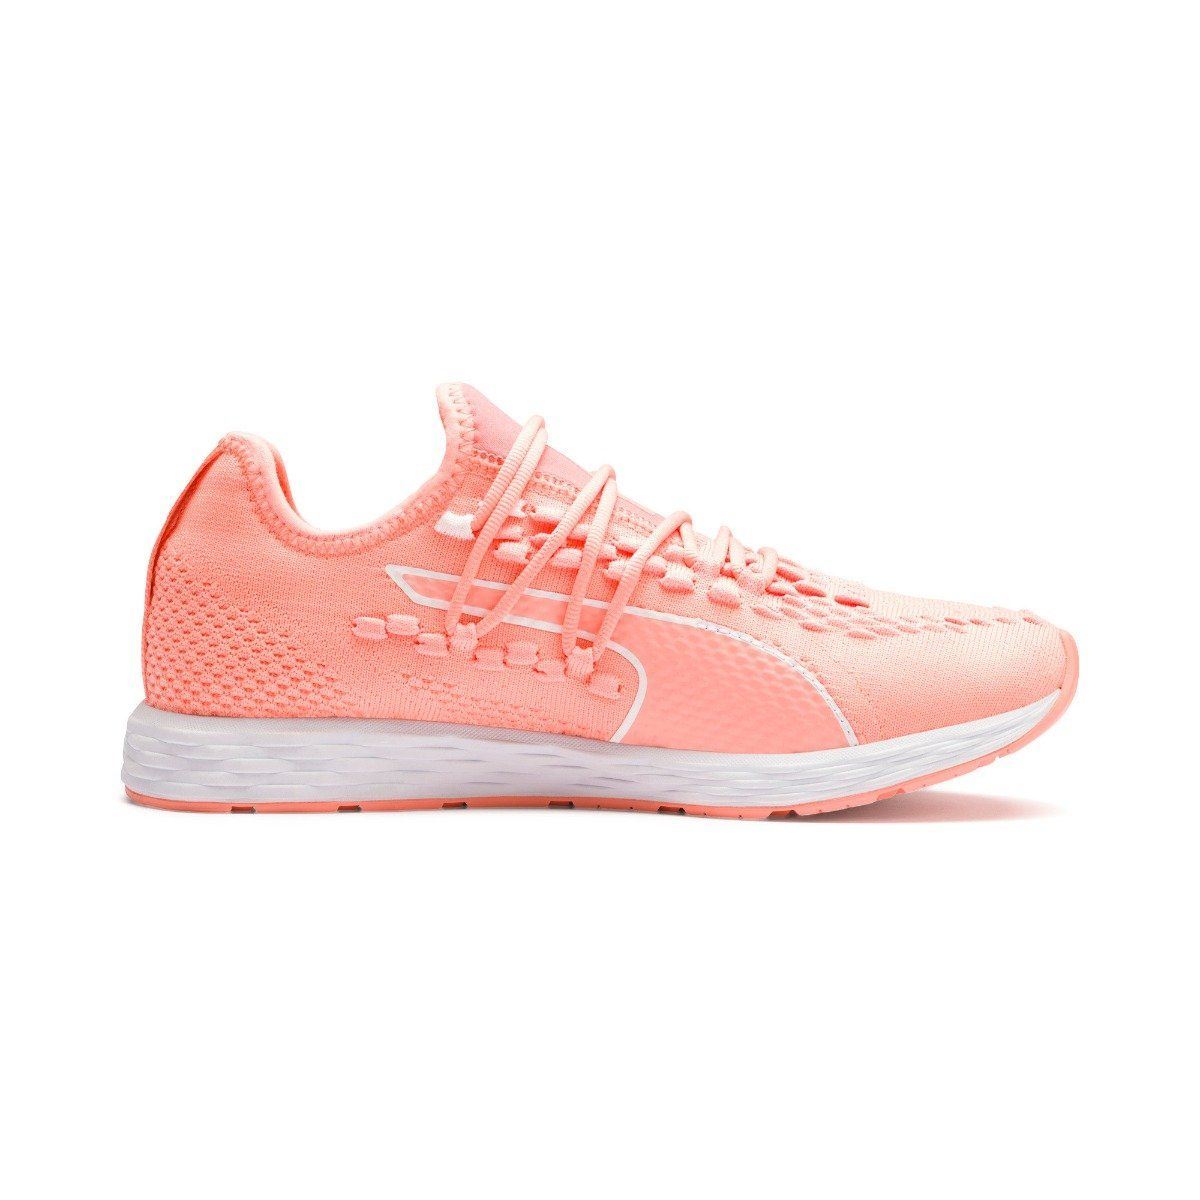 Puma Speed 300 Racer dame